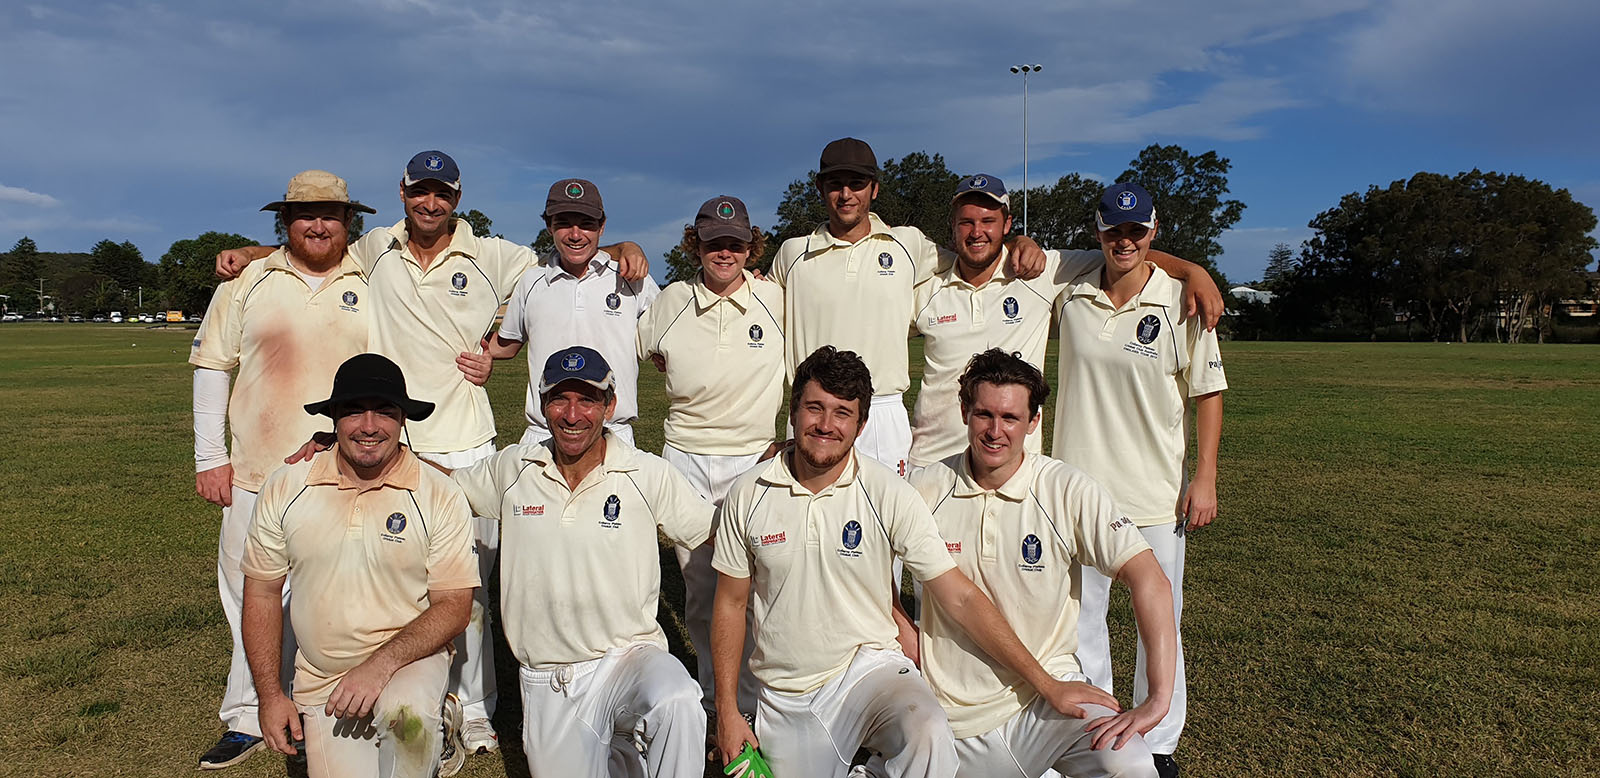 Seniors Cricket on the Northern Beaches. Collaroy Plateau Cricket Club 3rd Grade senior team in the Manly Warringah Cricket Association.